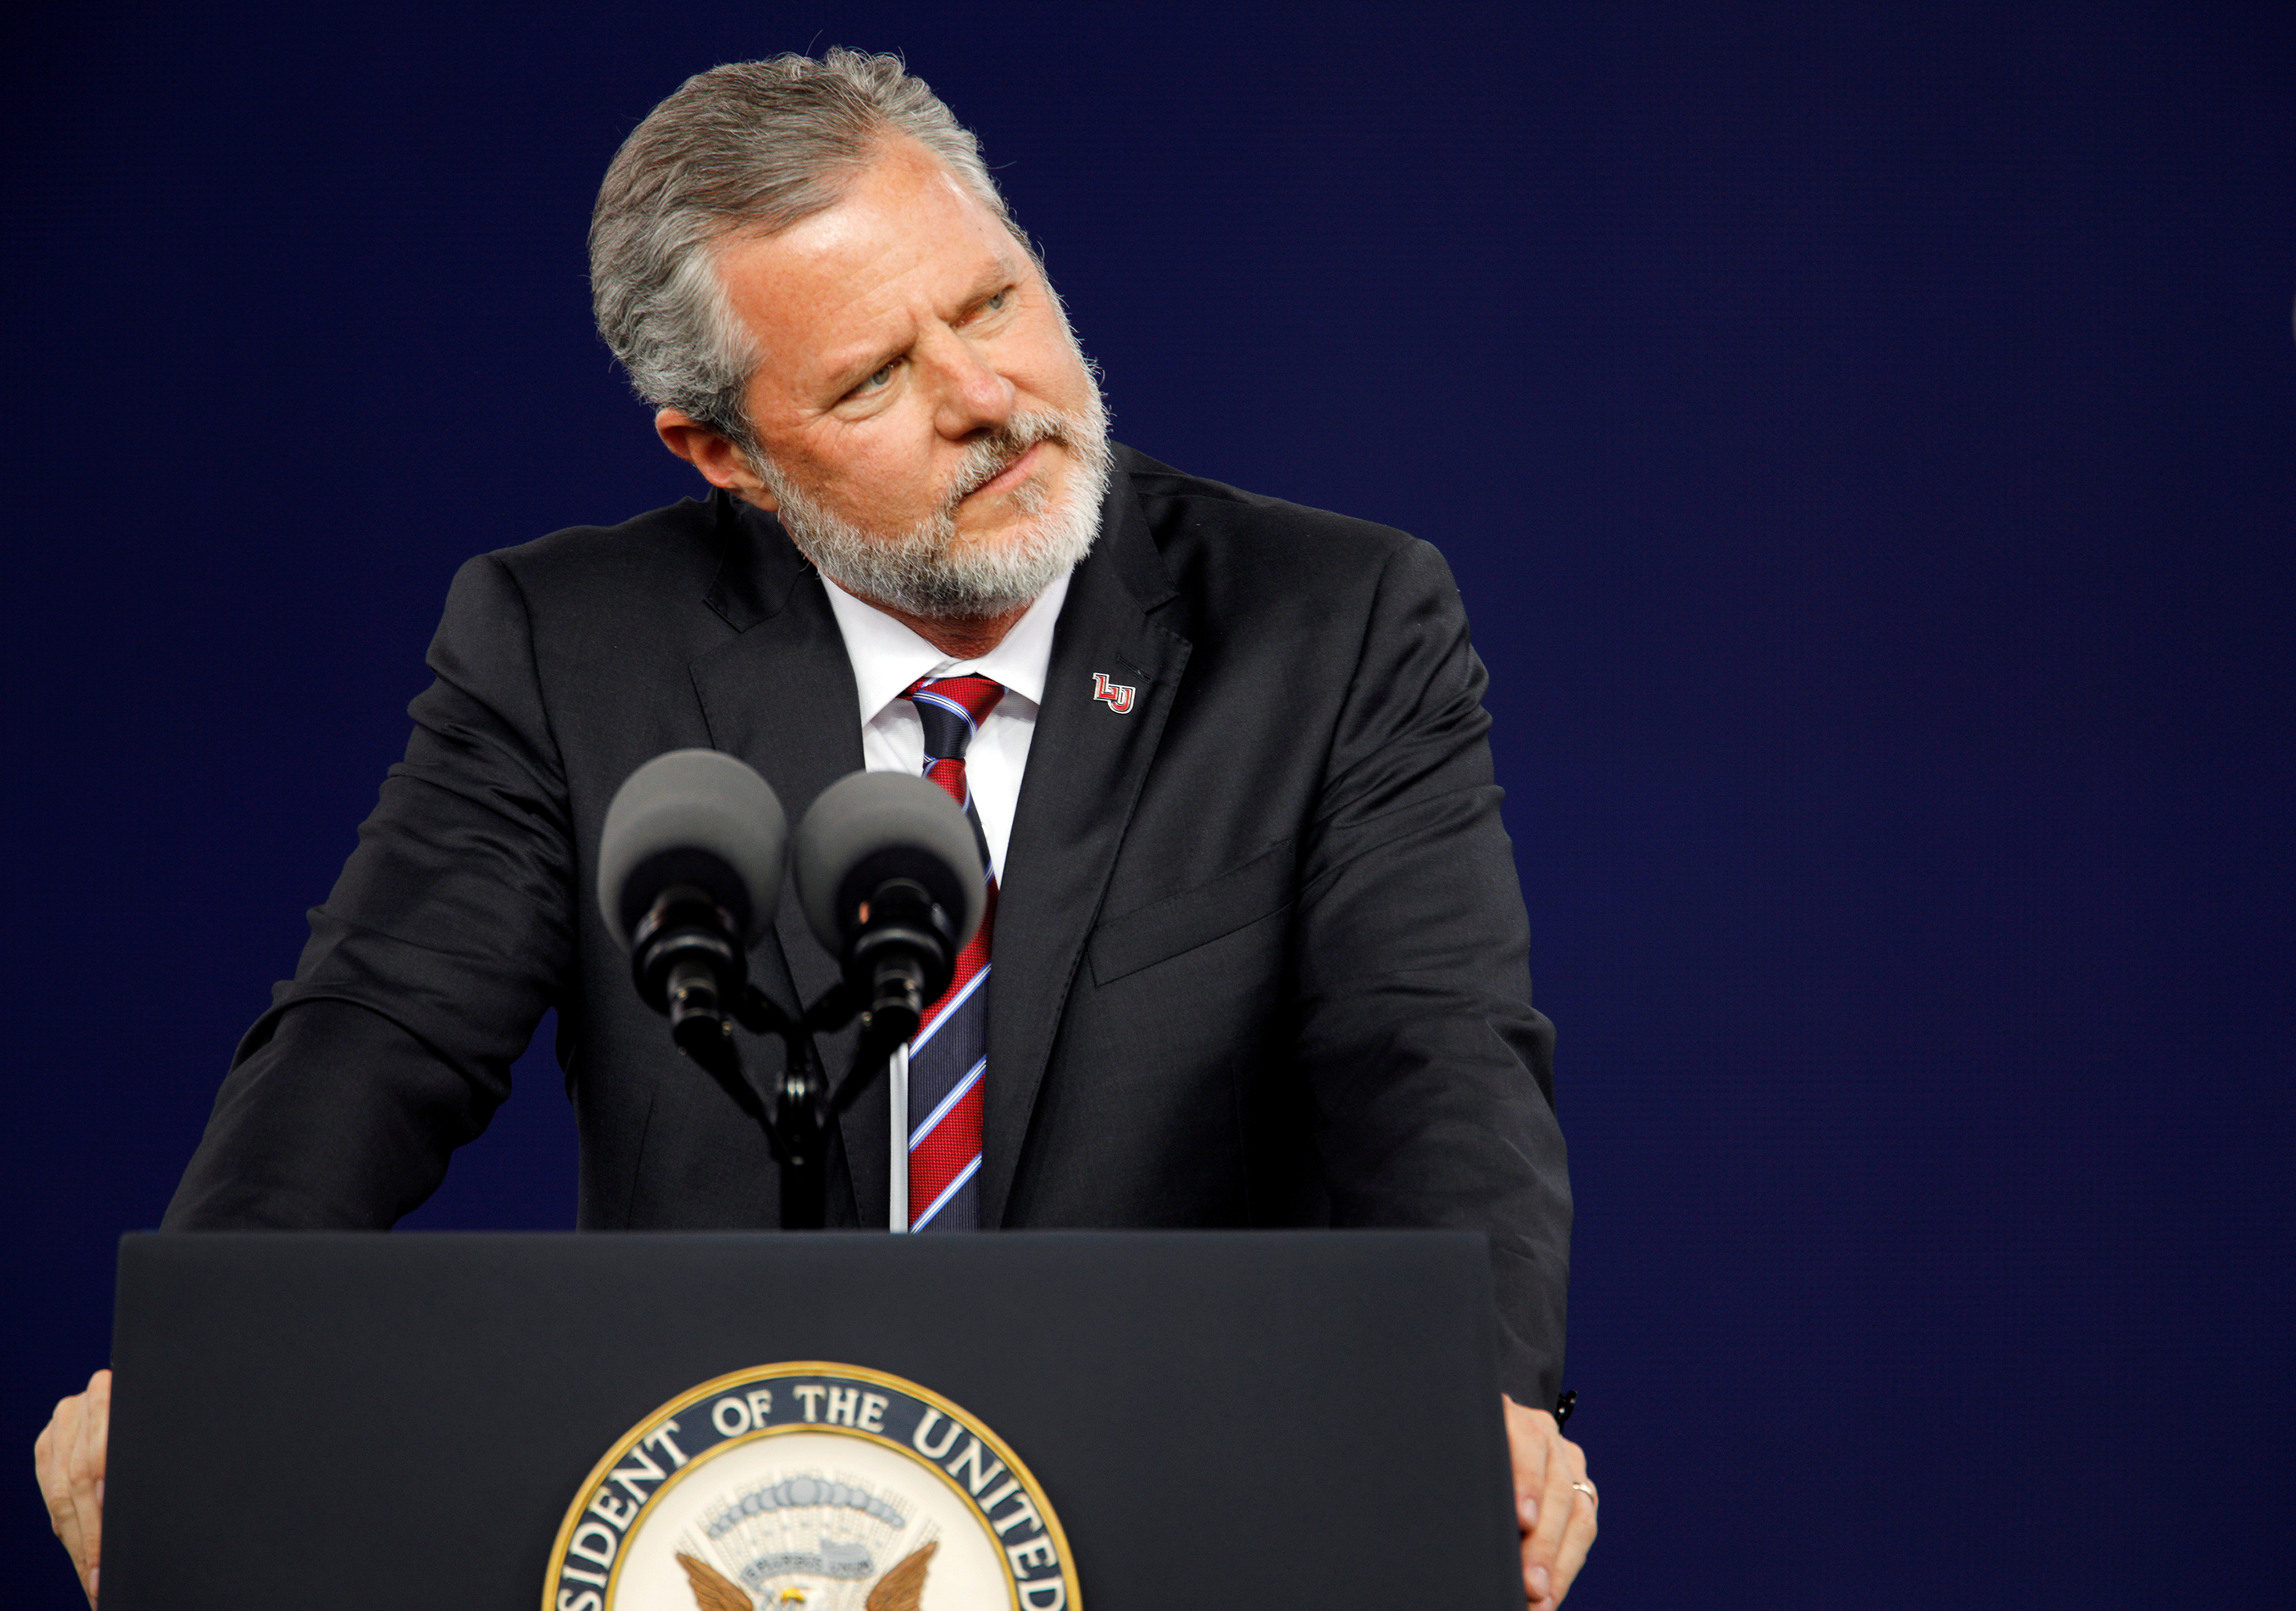 Liberty University President Jerry Falwell Jr. pauses during the school's commencement ceremonies in Lynchburg, Virginia, U.S., May 11, 2019.  REUTERS/Jonathan Drake